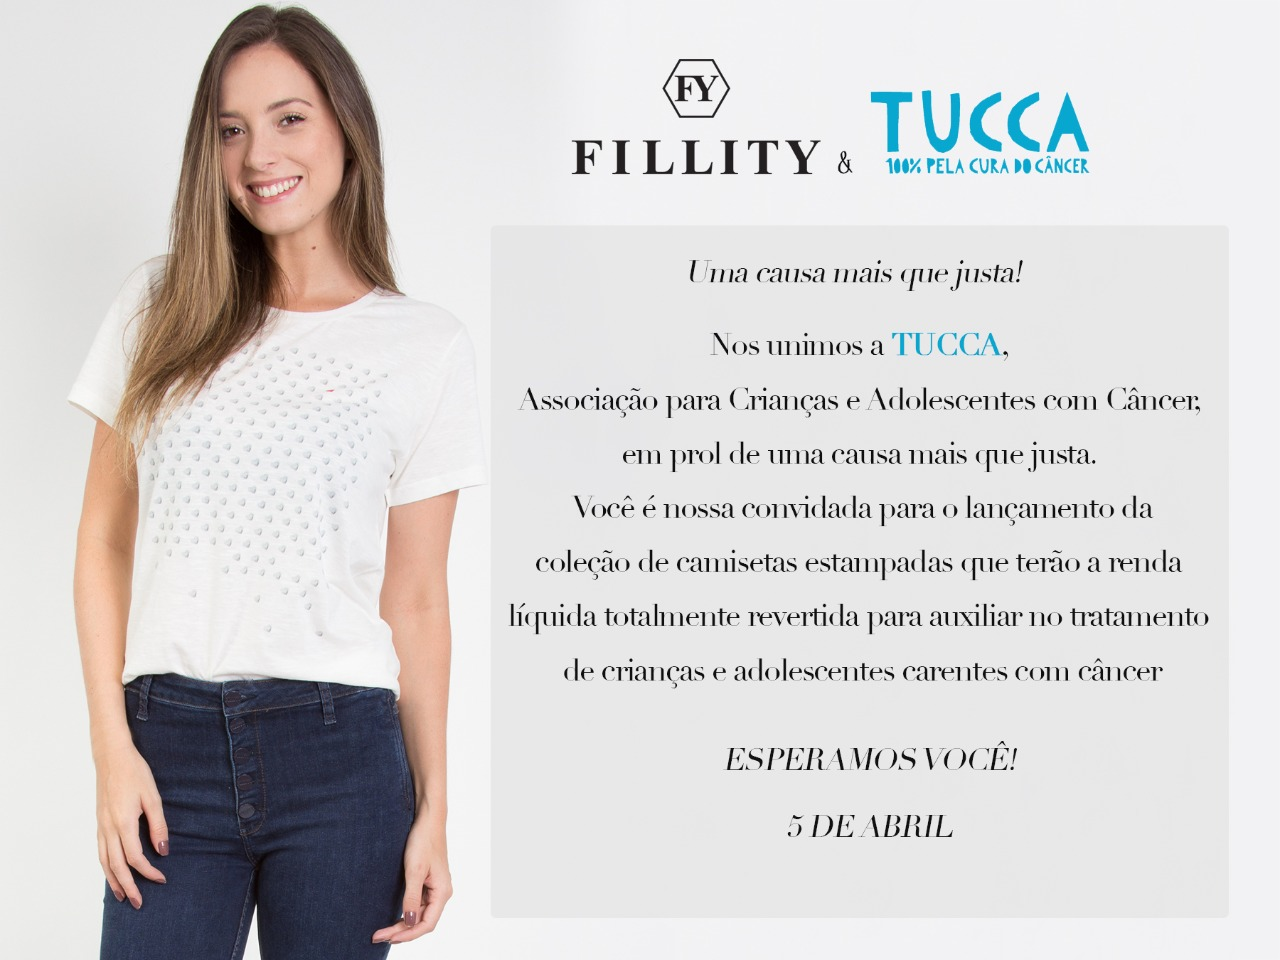 tucca